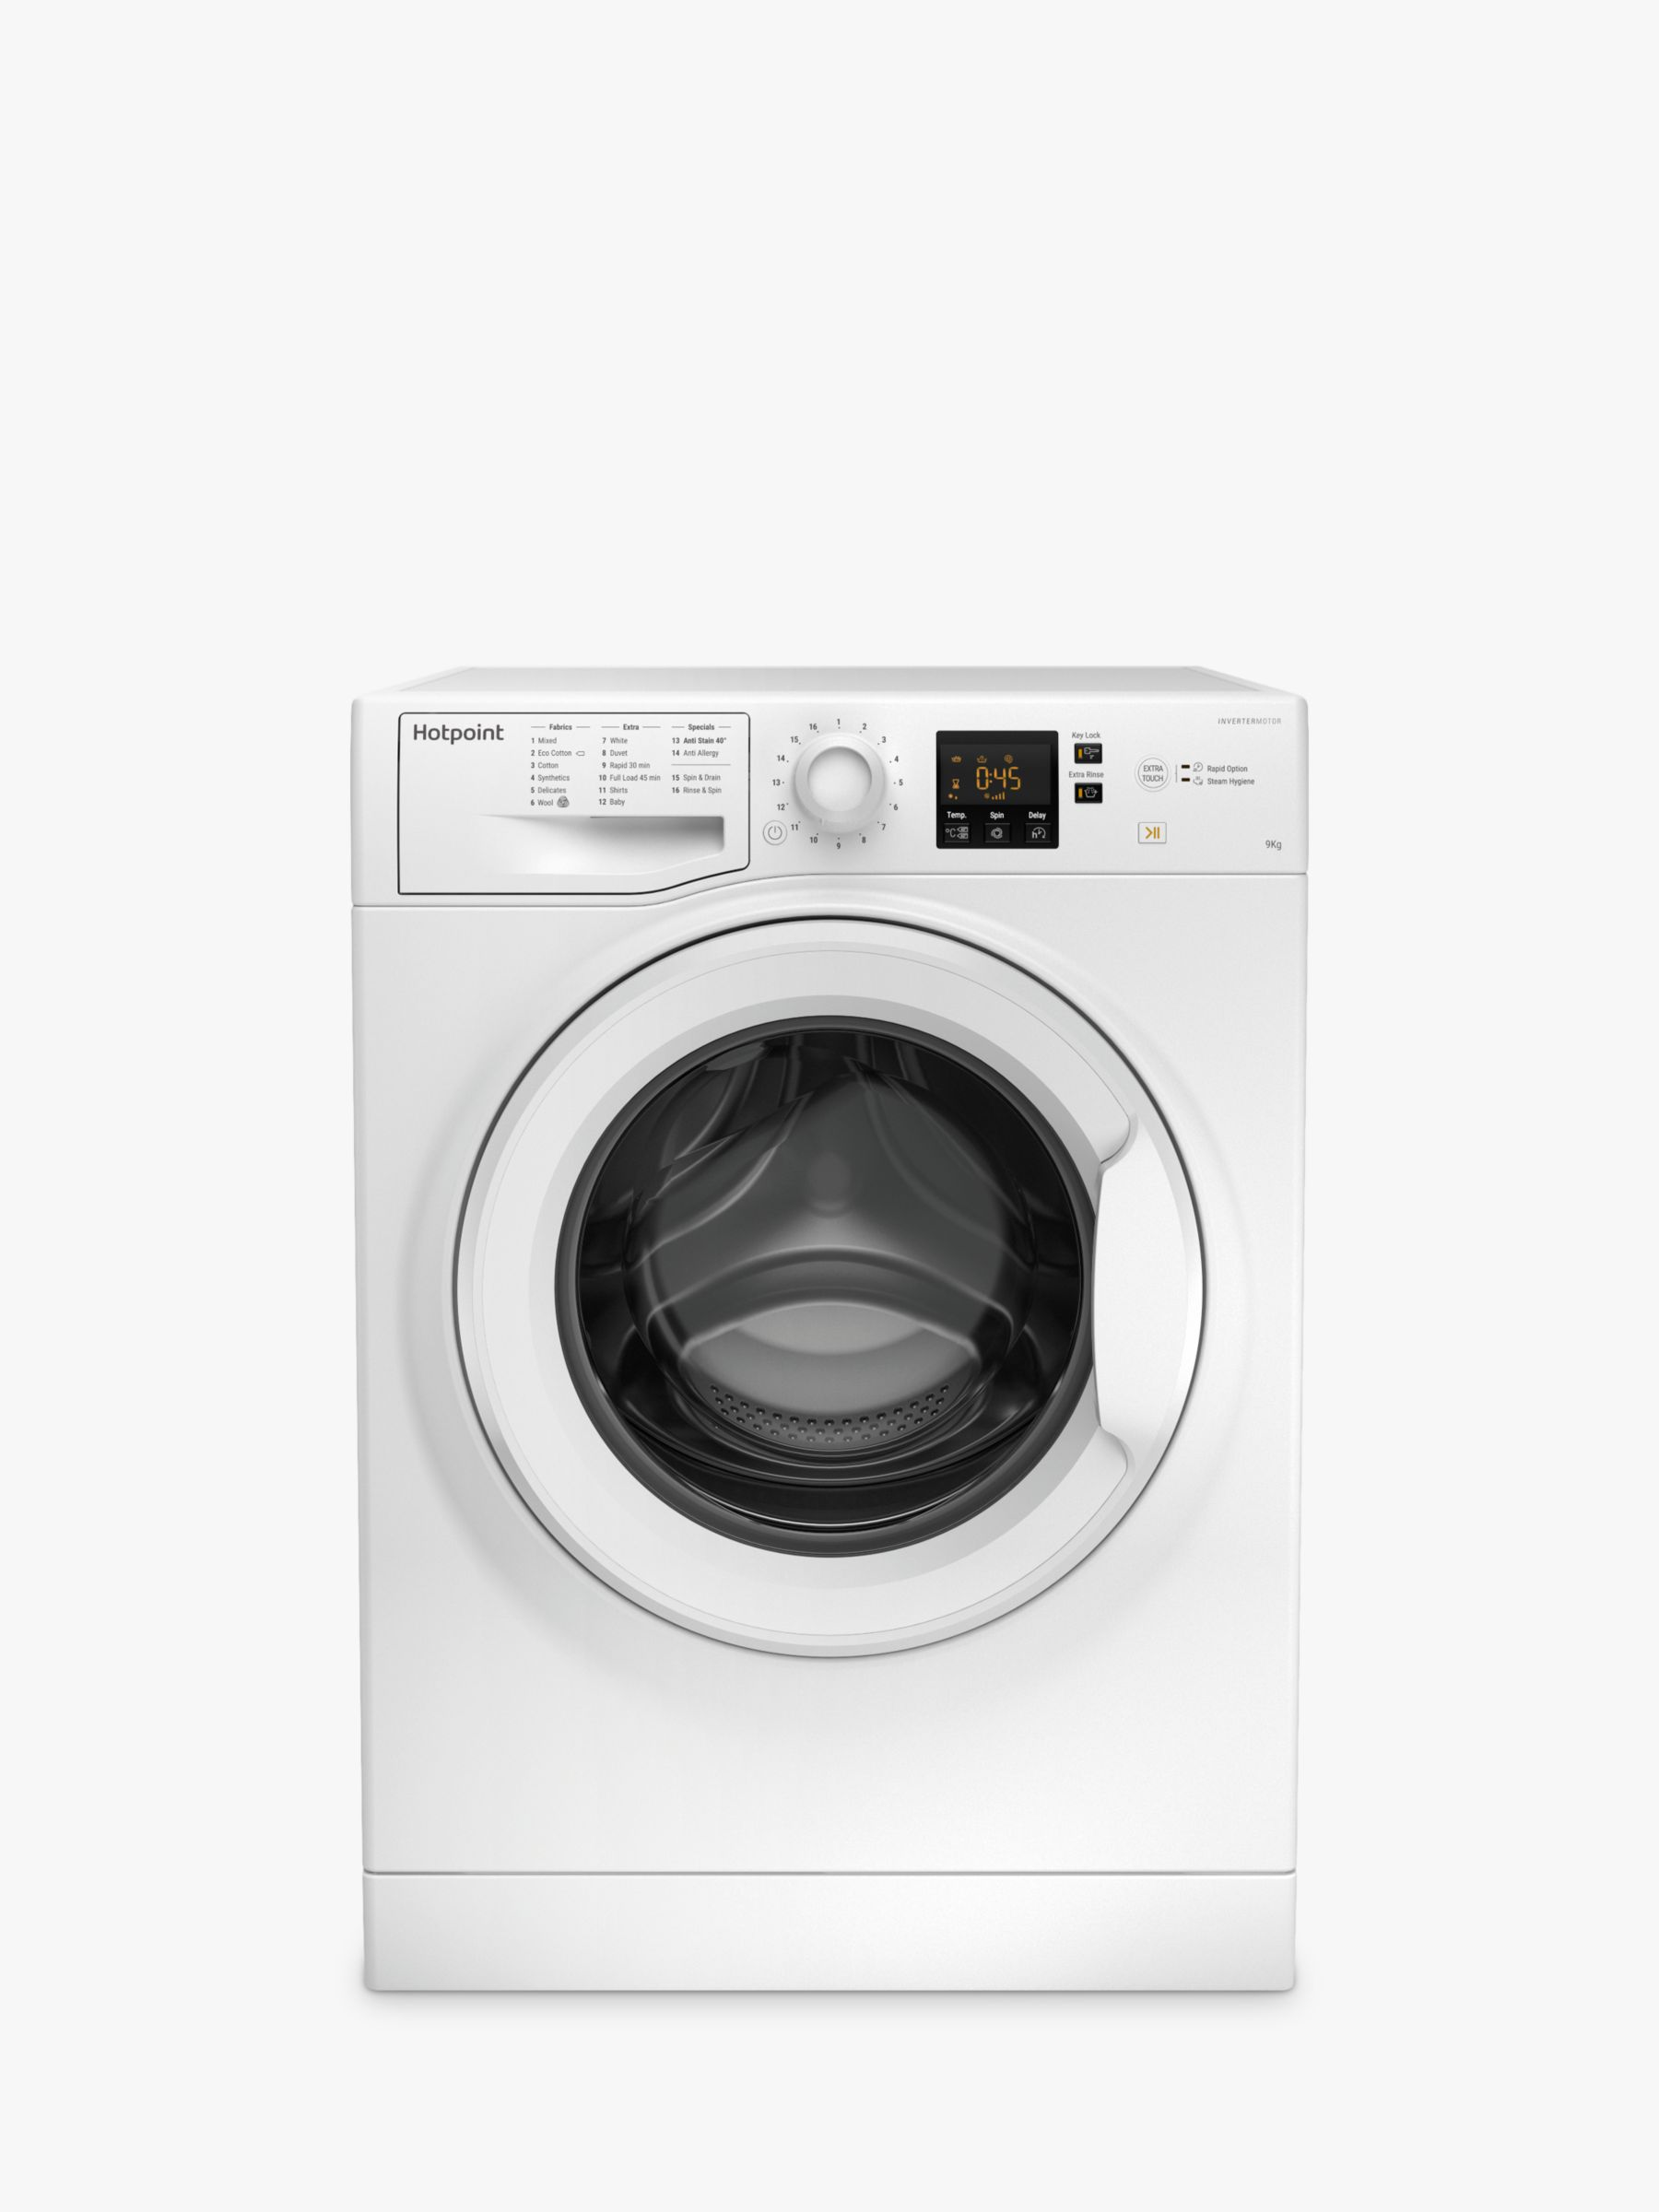 Hotpoint Hotpoint NSWJ 942U Freestanding Washing Machine, 9kg Load, A++ Energy Rating, 1400rpm Spin, White